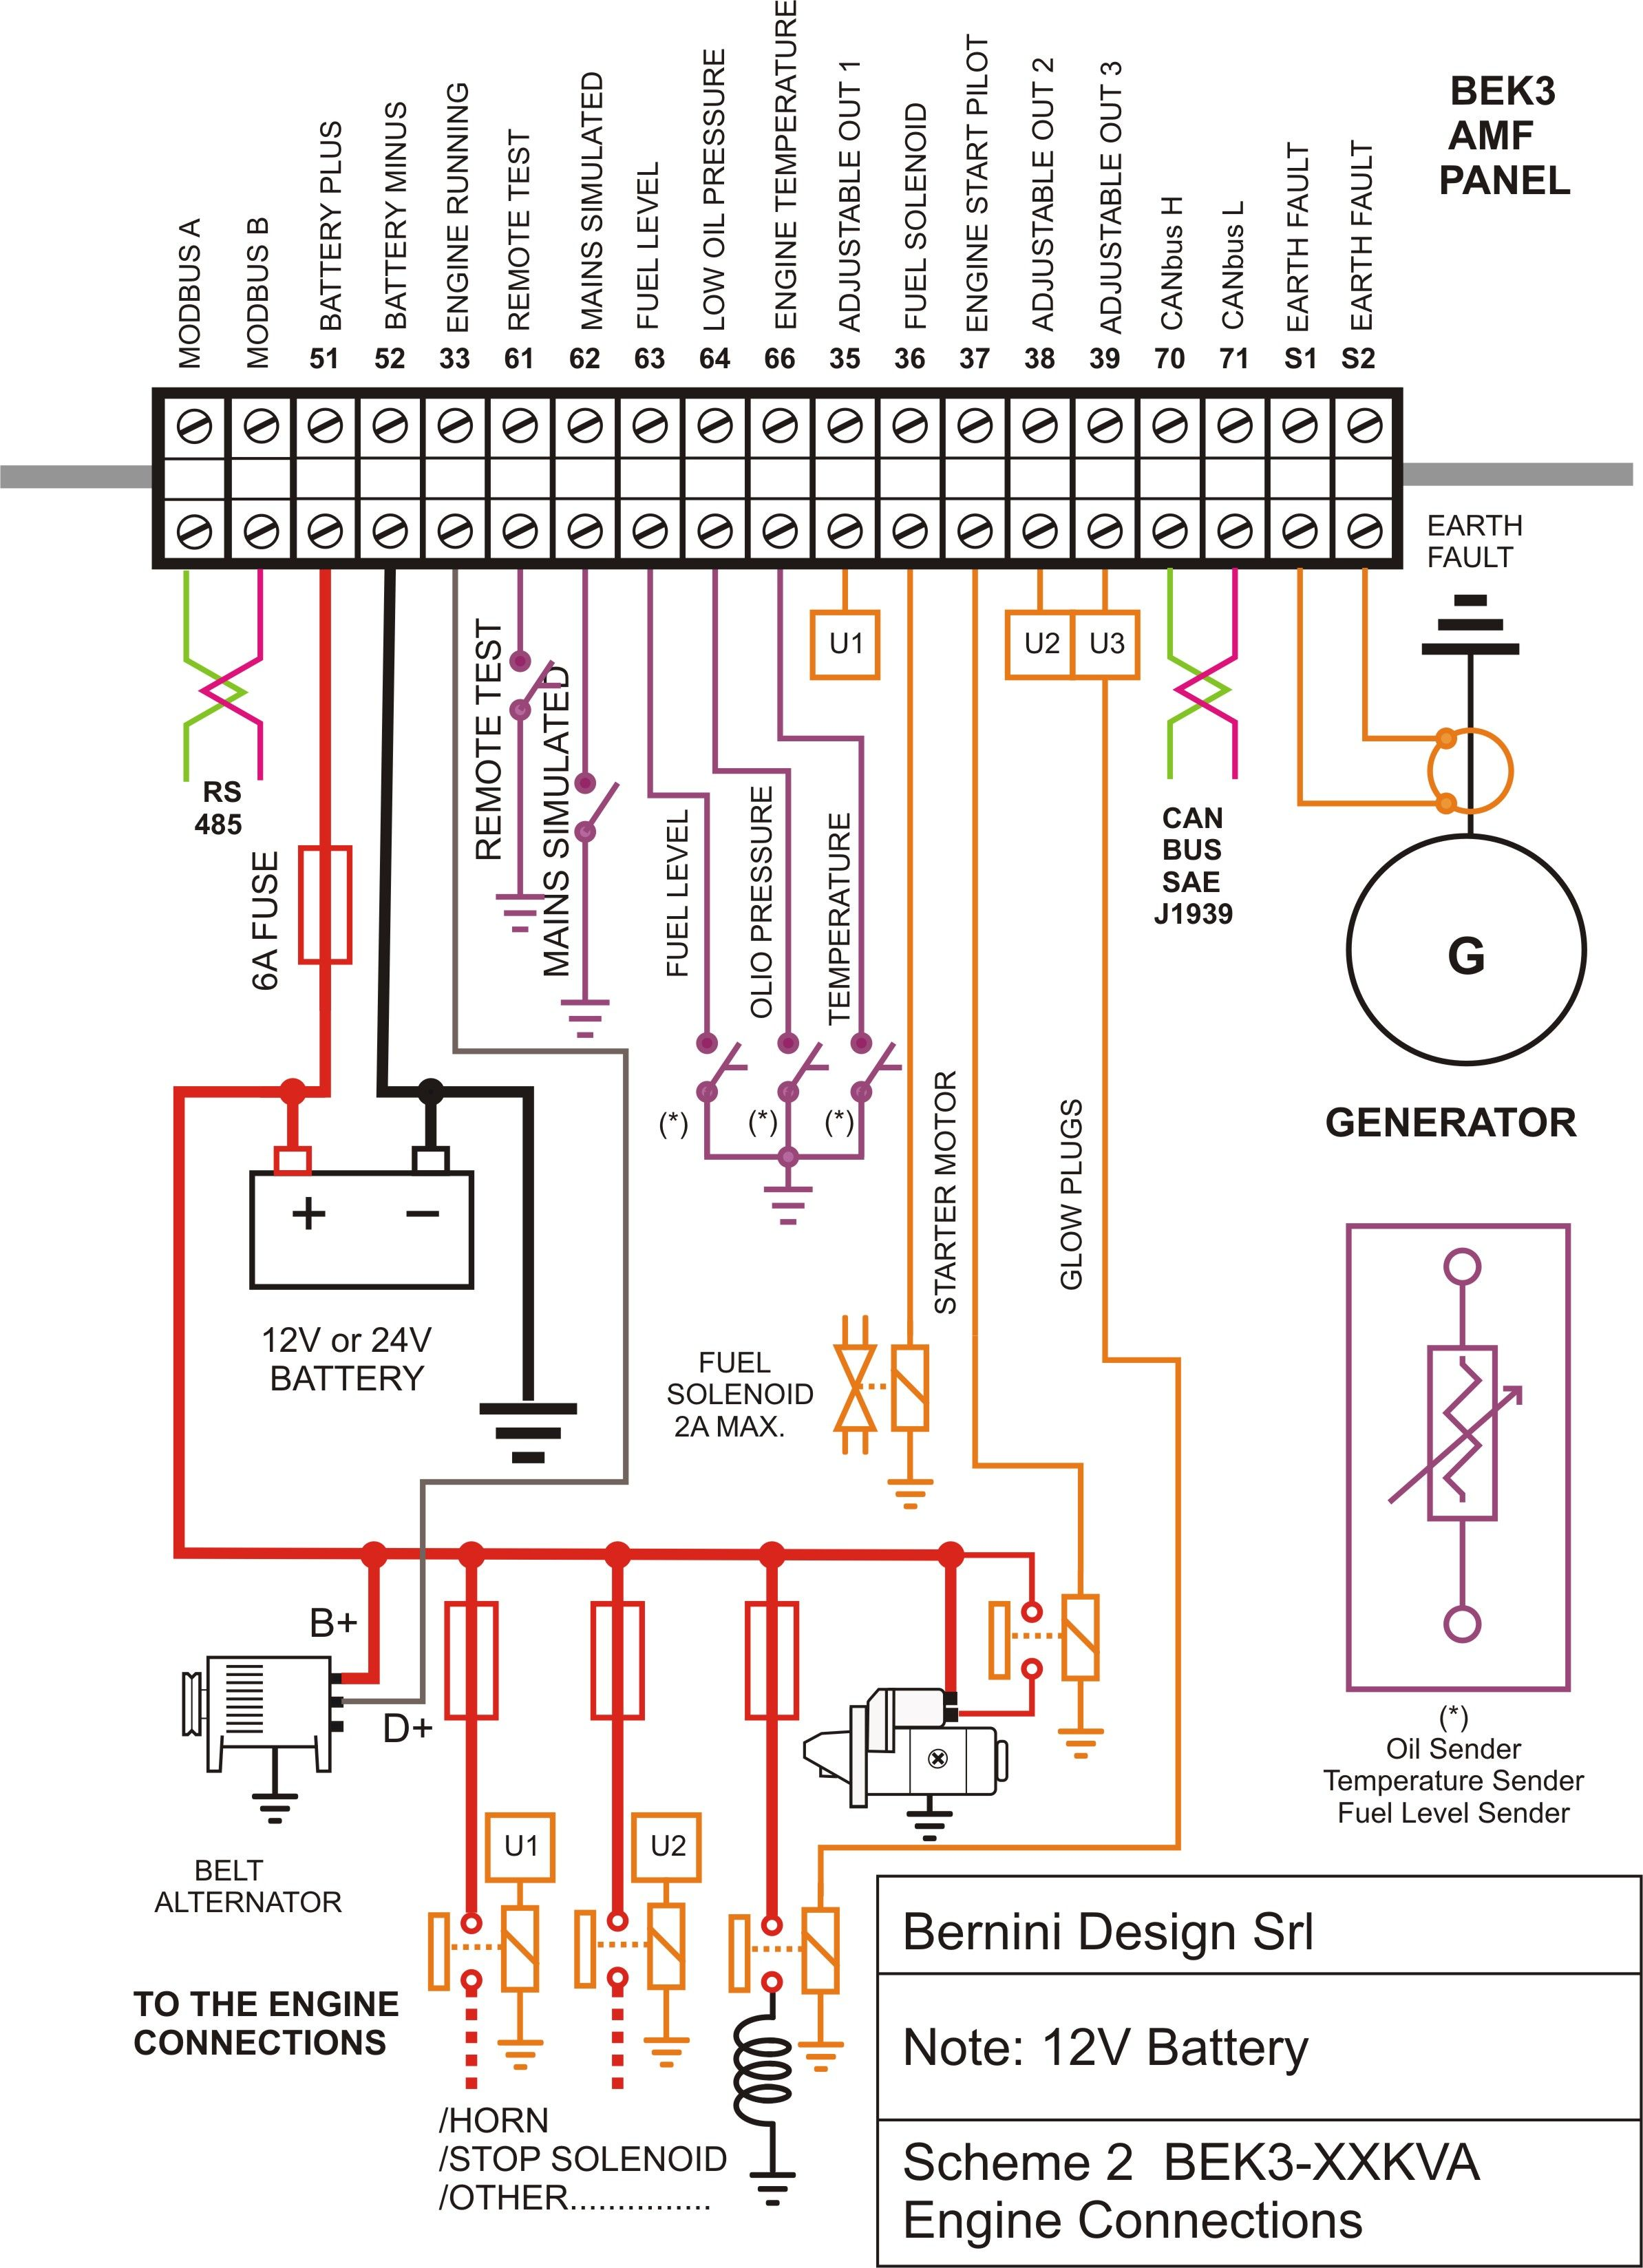 electrical control wiring diagrams diesel generator control panel wiring diagram engine connections  diesel generator control panel wiring